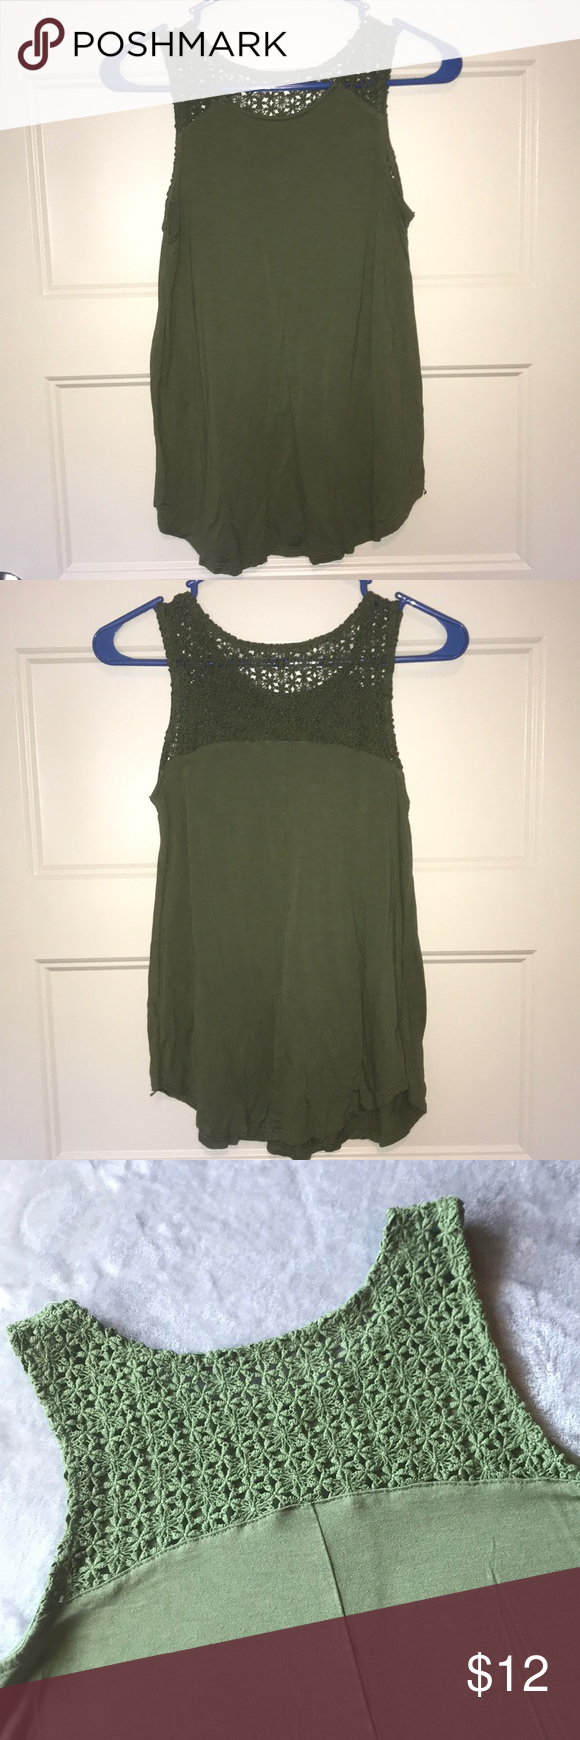 Old Navy Tank Top Forest green tank top has flower crochet pattern along straps and shoulder. Bell-shaped hemline. Never worn - no original tags. Old Navy Tops Tank Tops #crochettanktops